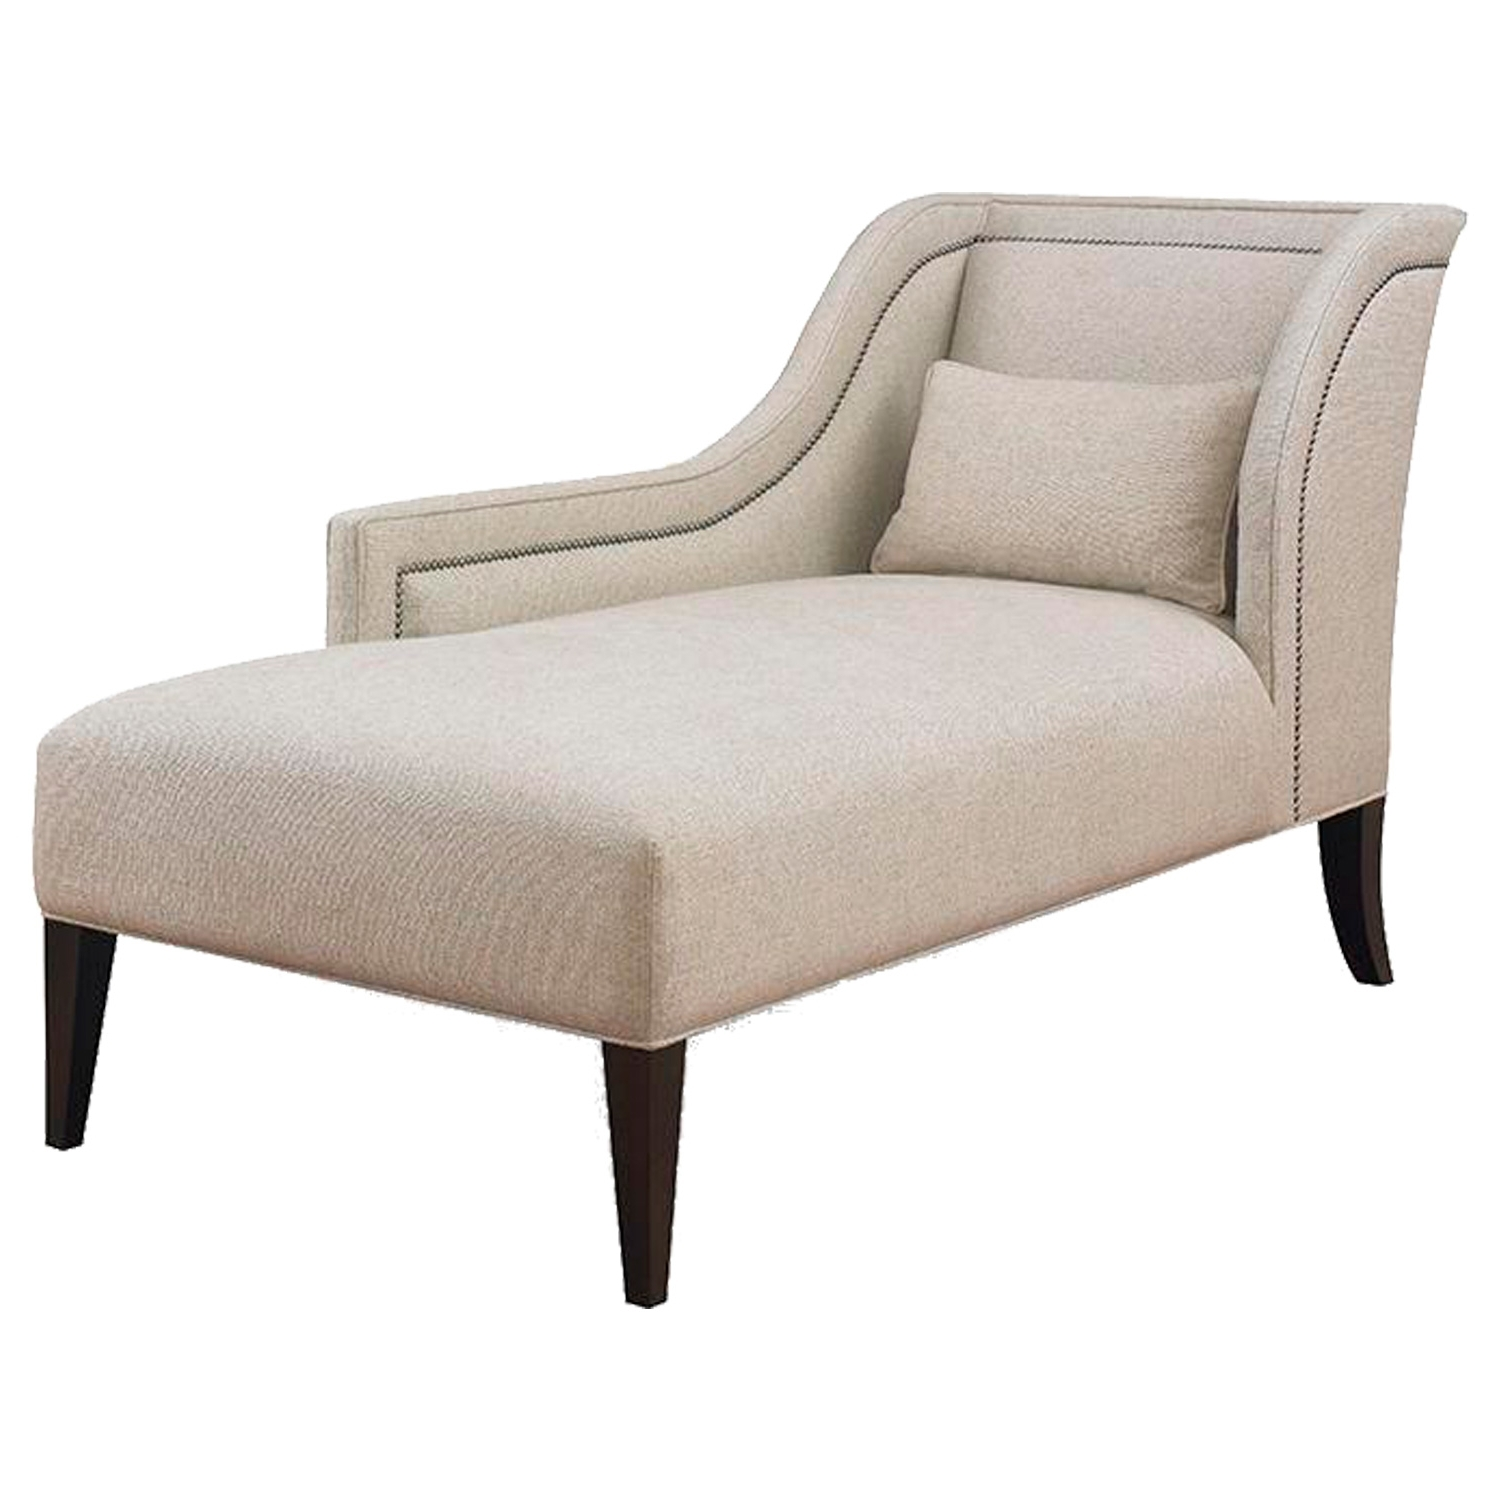 Well Liked Buy Pasadena One Arm Chaisekravet – Made To Order Designer For Beige Chaise Lounges (View 15 of 15)